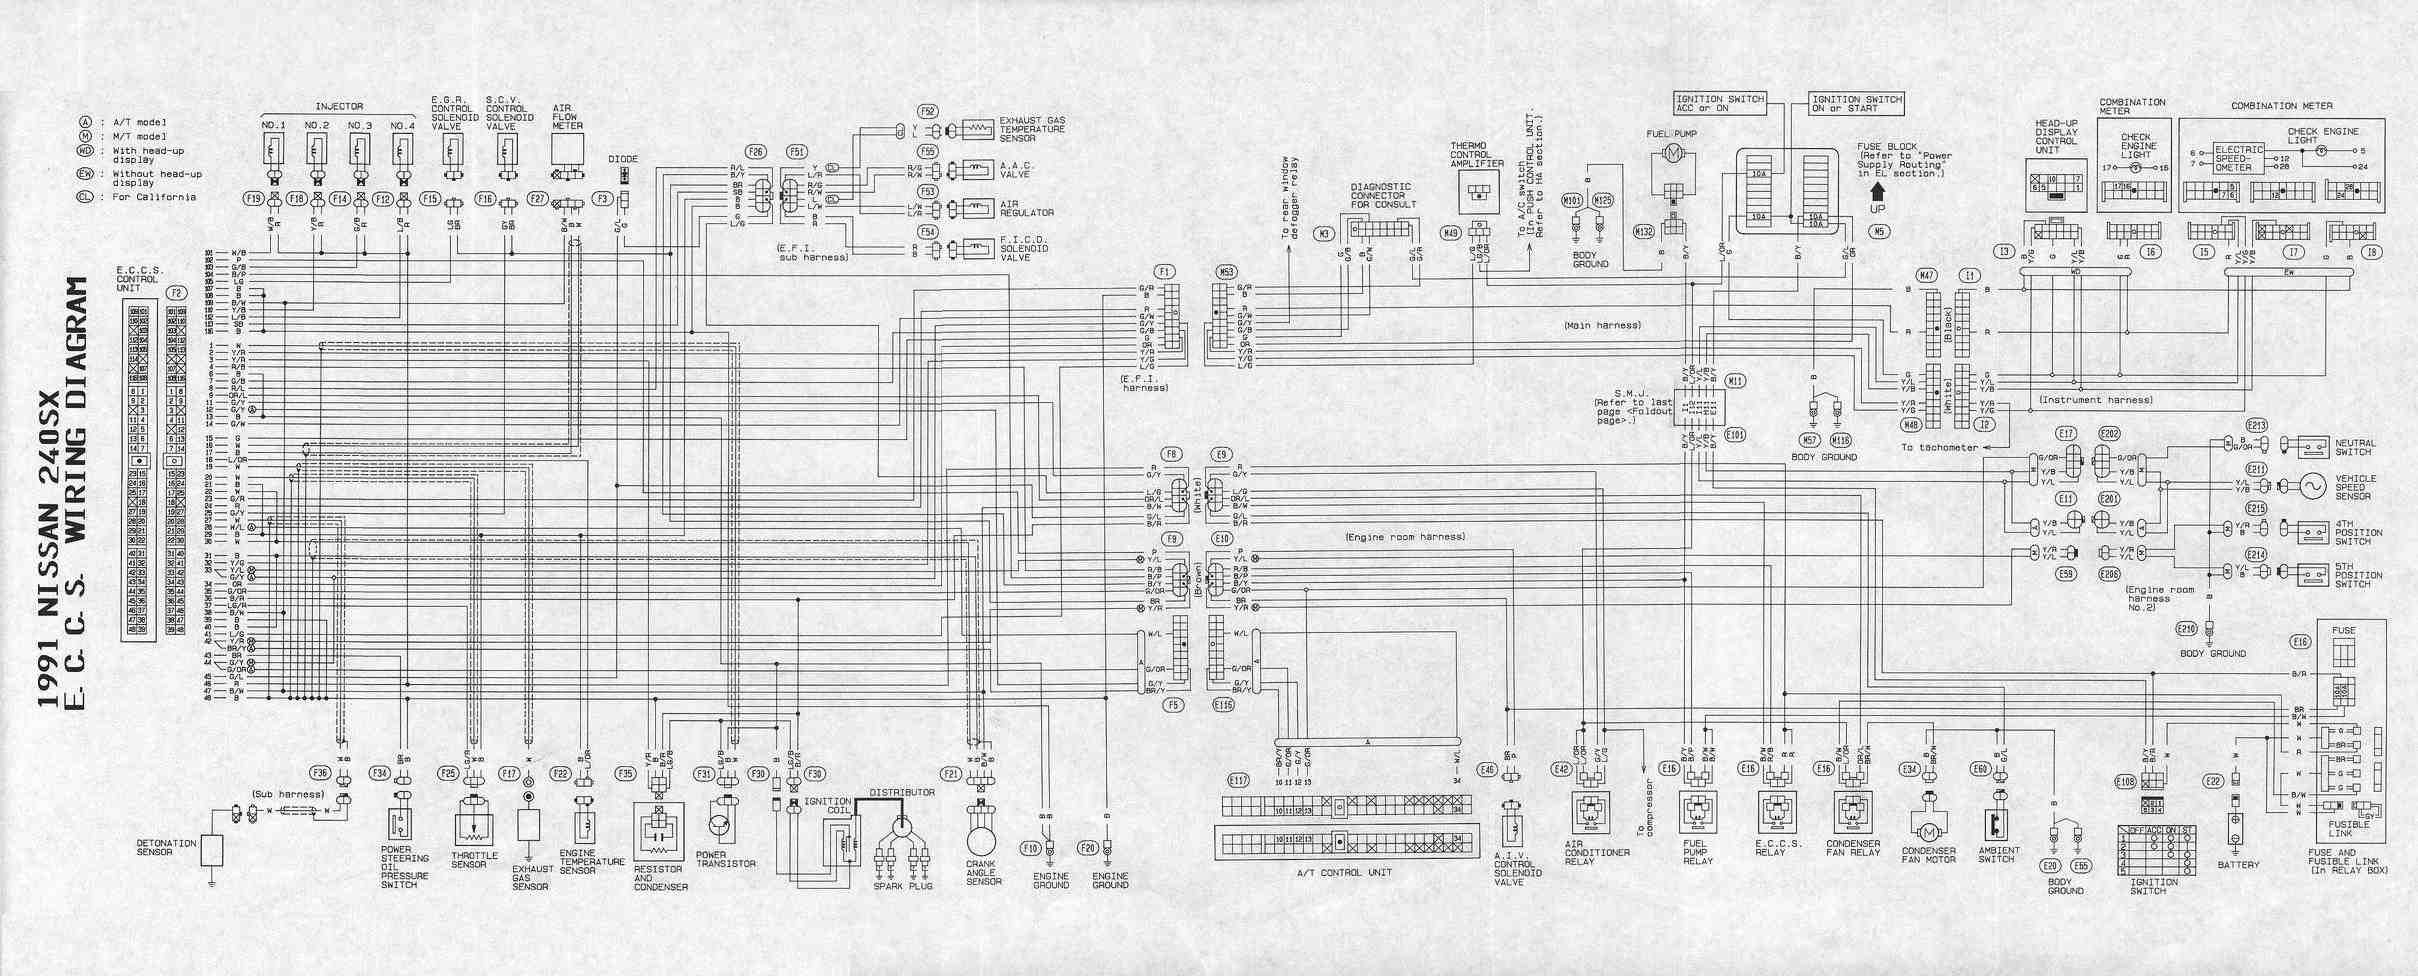 Wiring Diagram Nissan 2 4 ~ Circuit And Wiring Diagram for Bluebird Wiring Diagram 1995